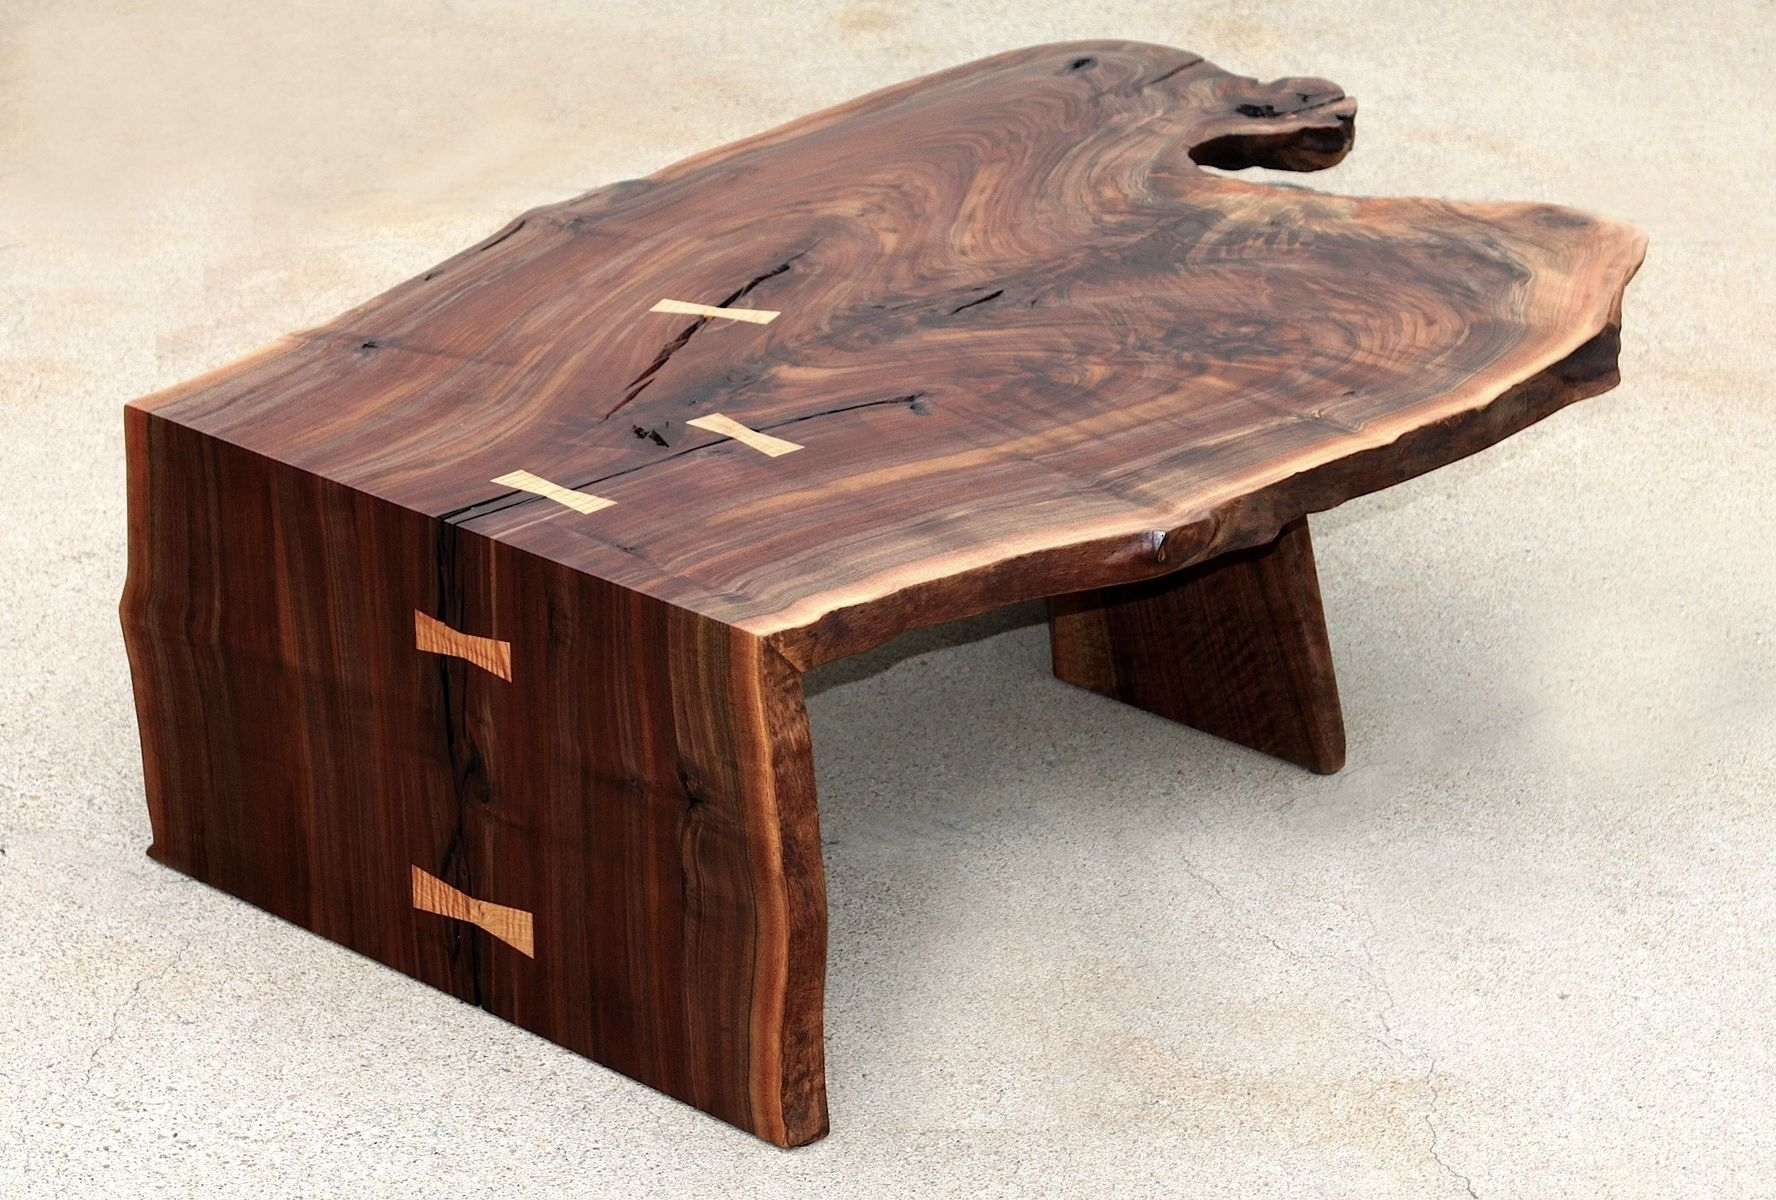 Waterfall Coffee Table Hand Made Steel And Wood14 Enchanting Pertaining To Waterfall Coffee Tables (Photo 16 of 30)